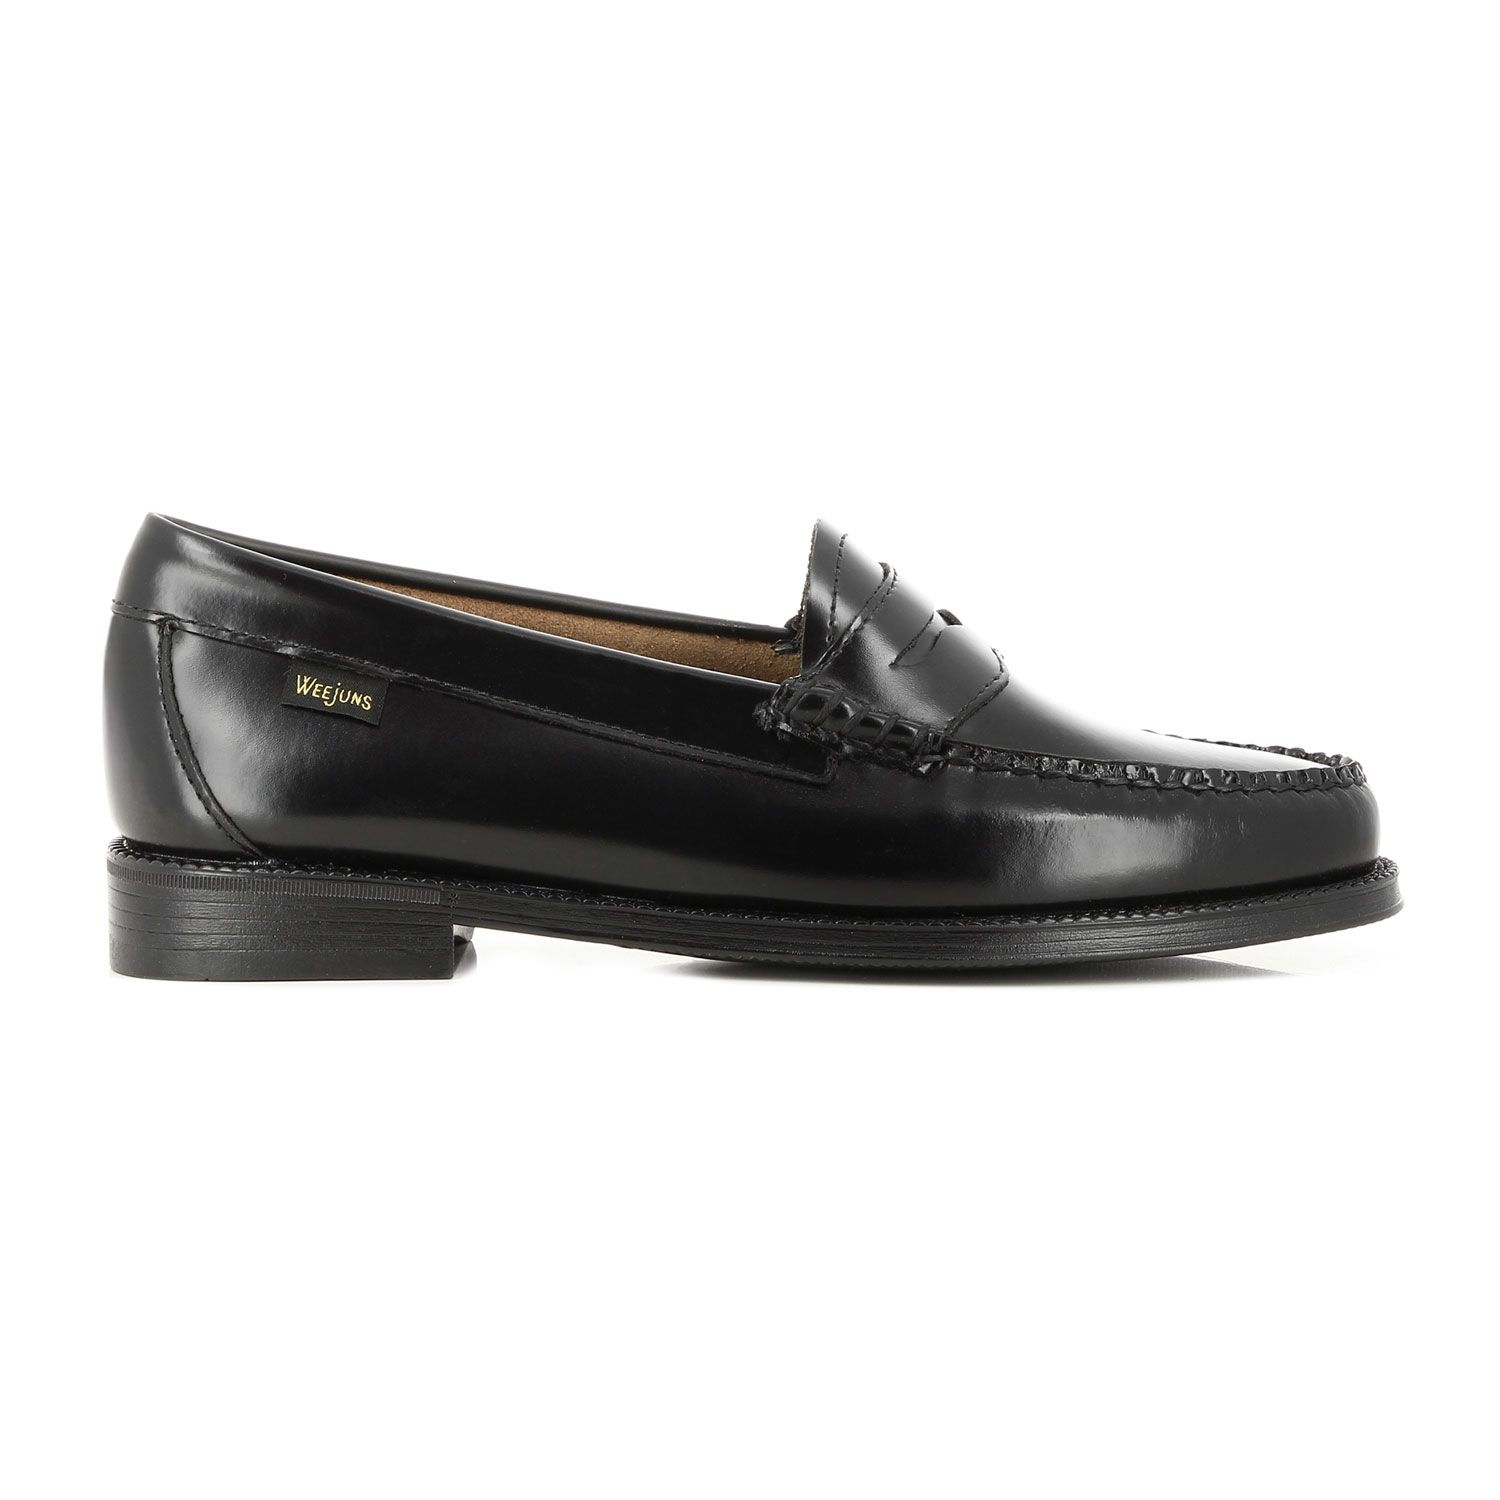 G. H. Bass Easy Weejuns Penny Loafers, Black Leather, 41